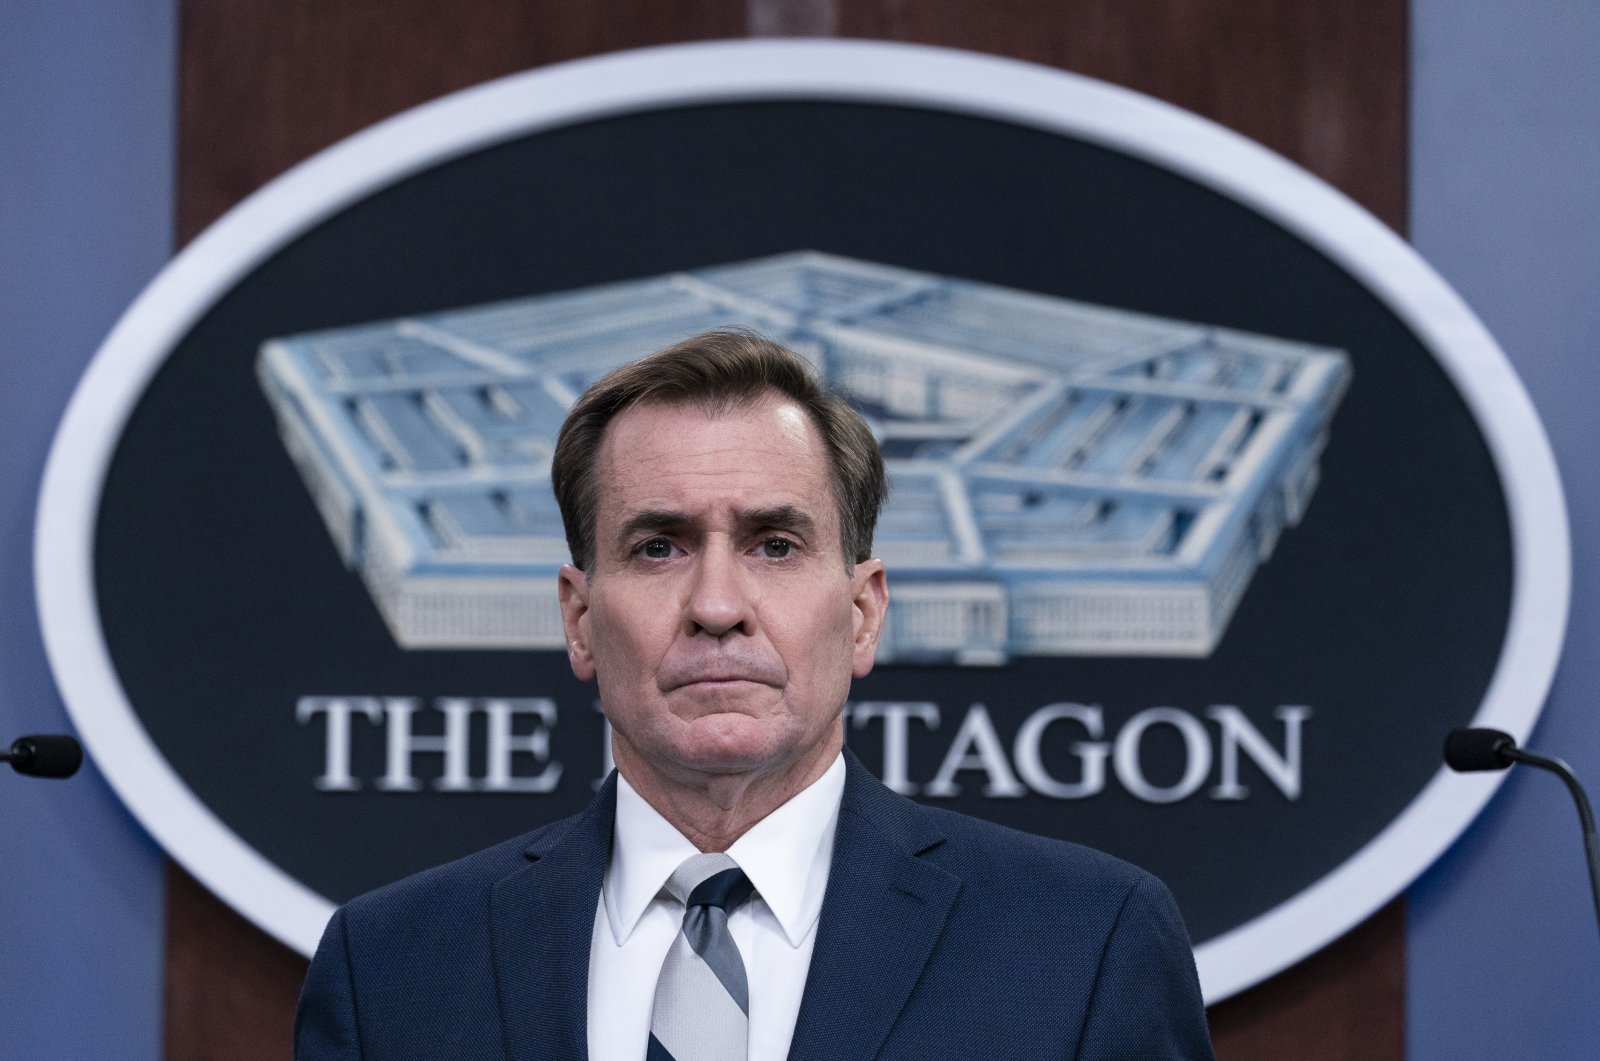 Pentagon spokesman John Kirby listens to a question during a media briefing at the Pentagon, Friday, March 5, 2021, in Washington. (AP Photo)